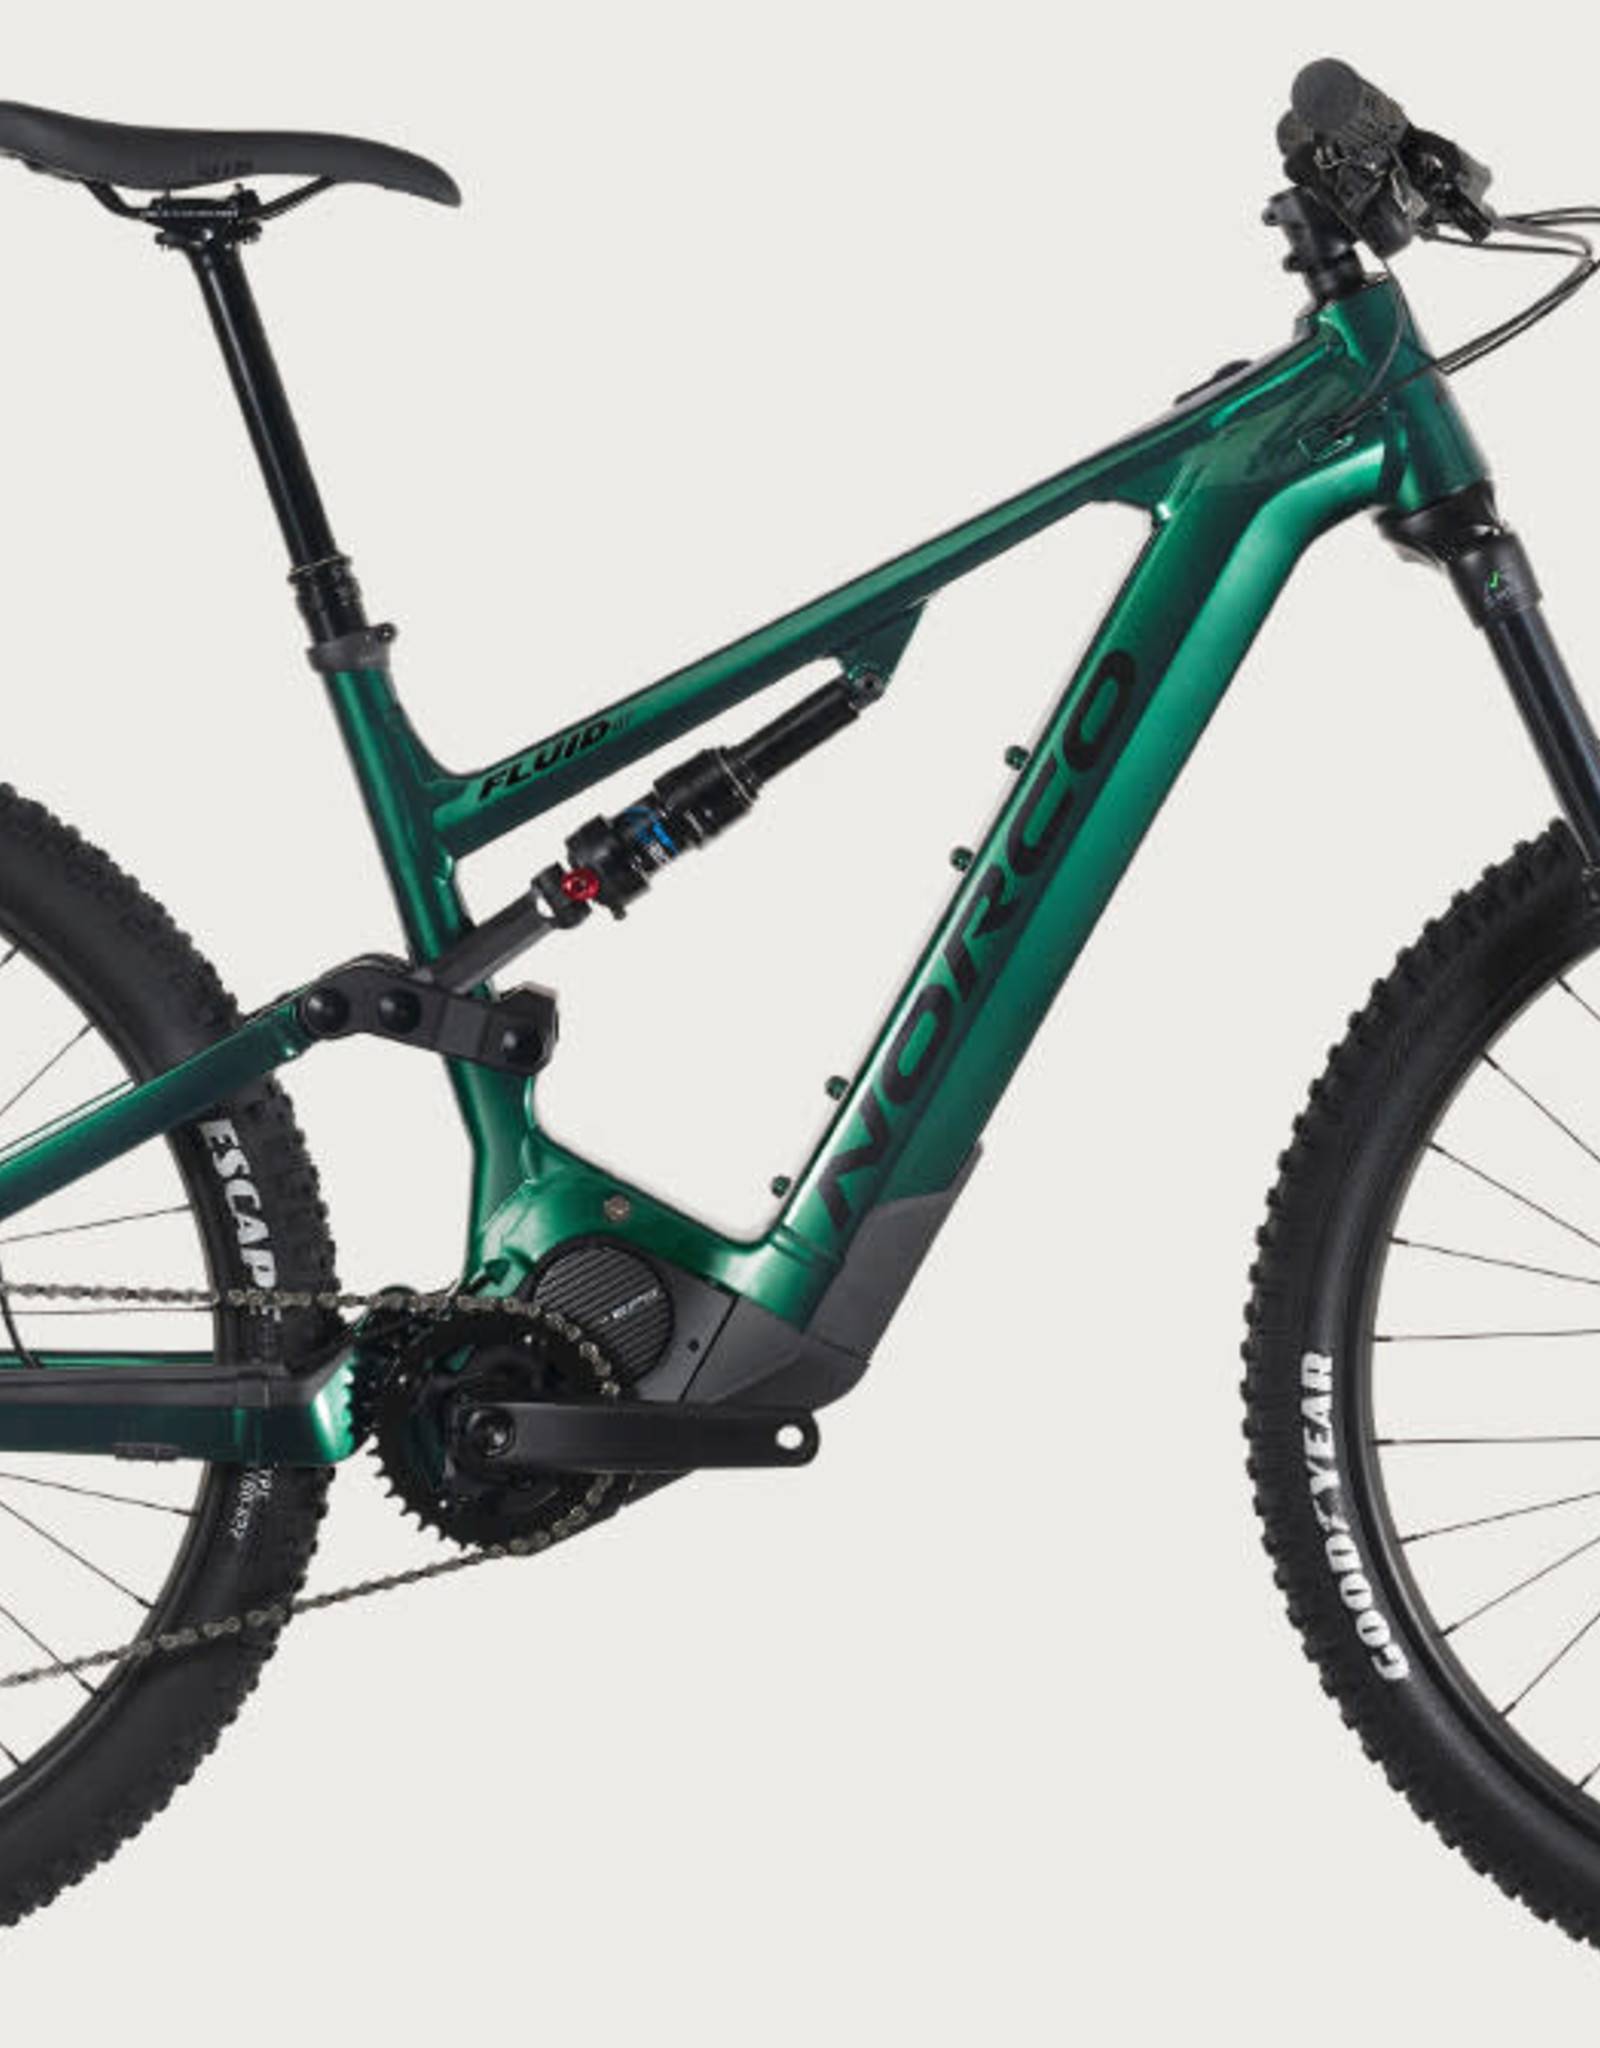 NORCO Norco FLUID VLT A2 B32KM M29 Green/Black (Battery Not Included)